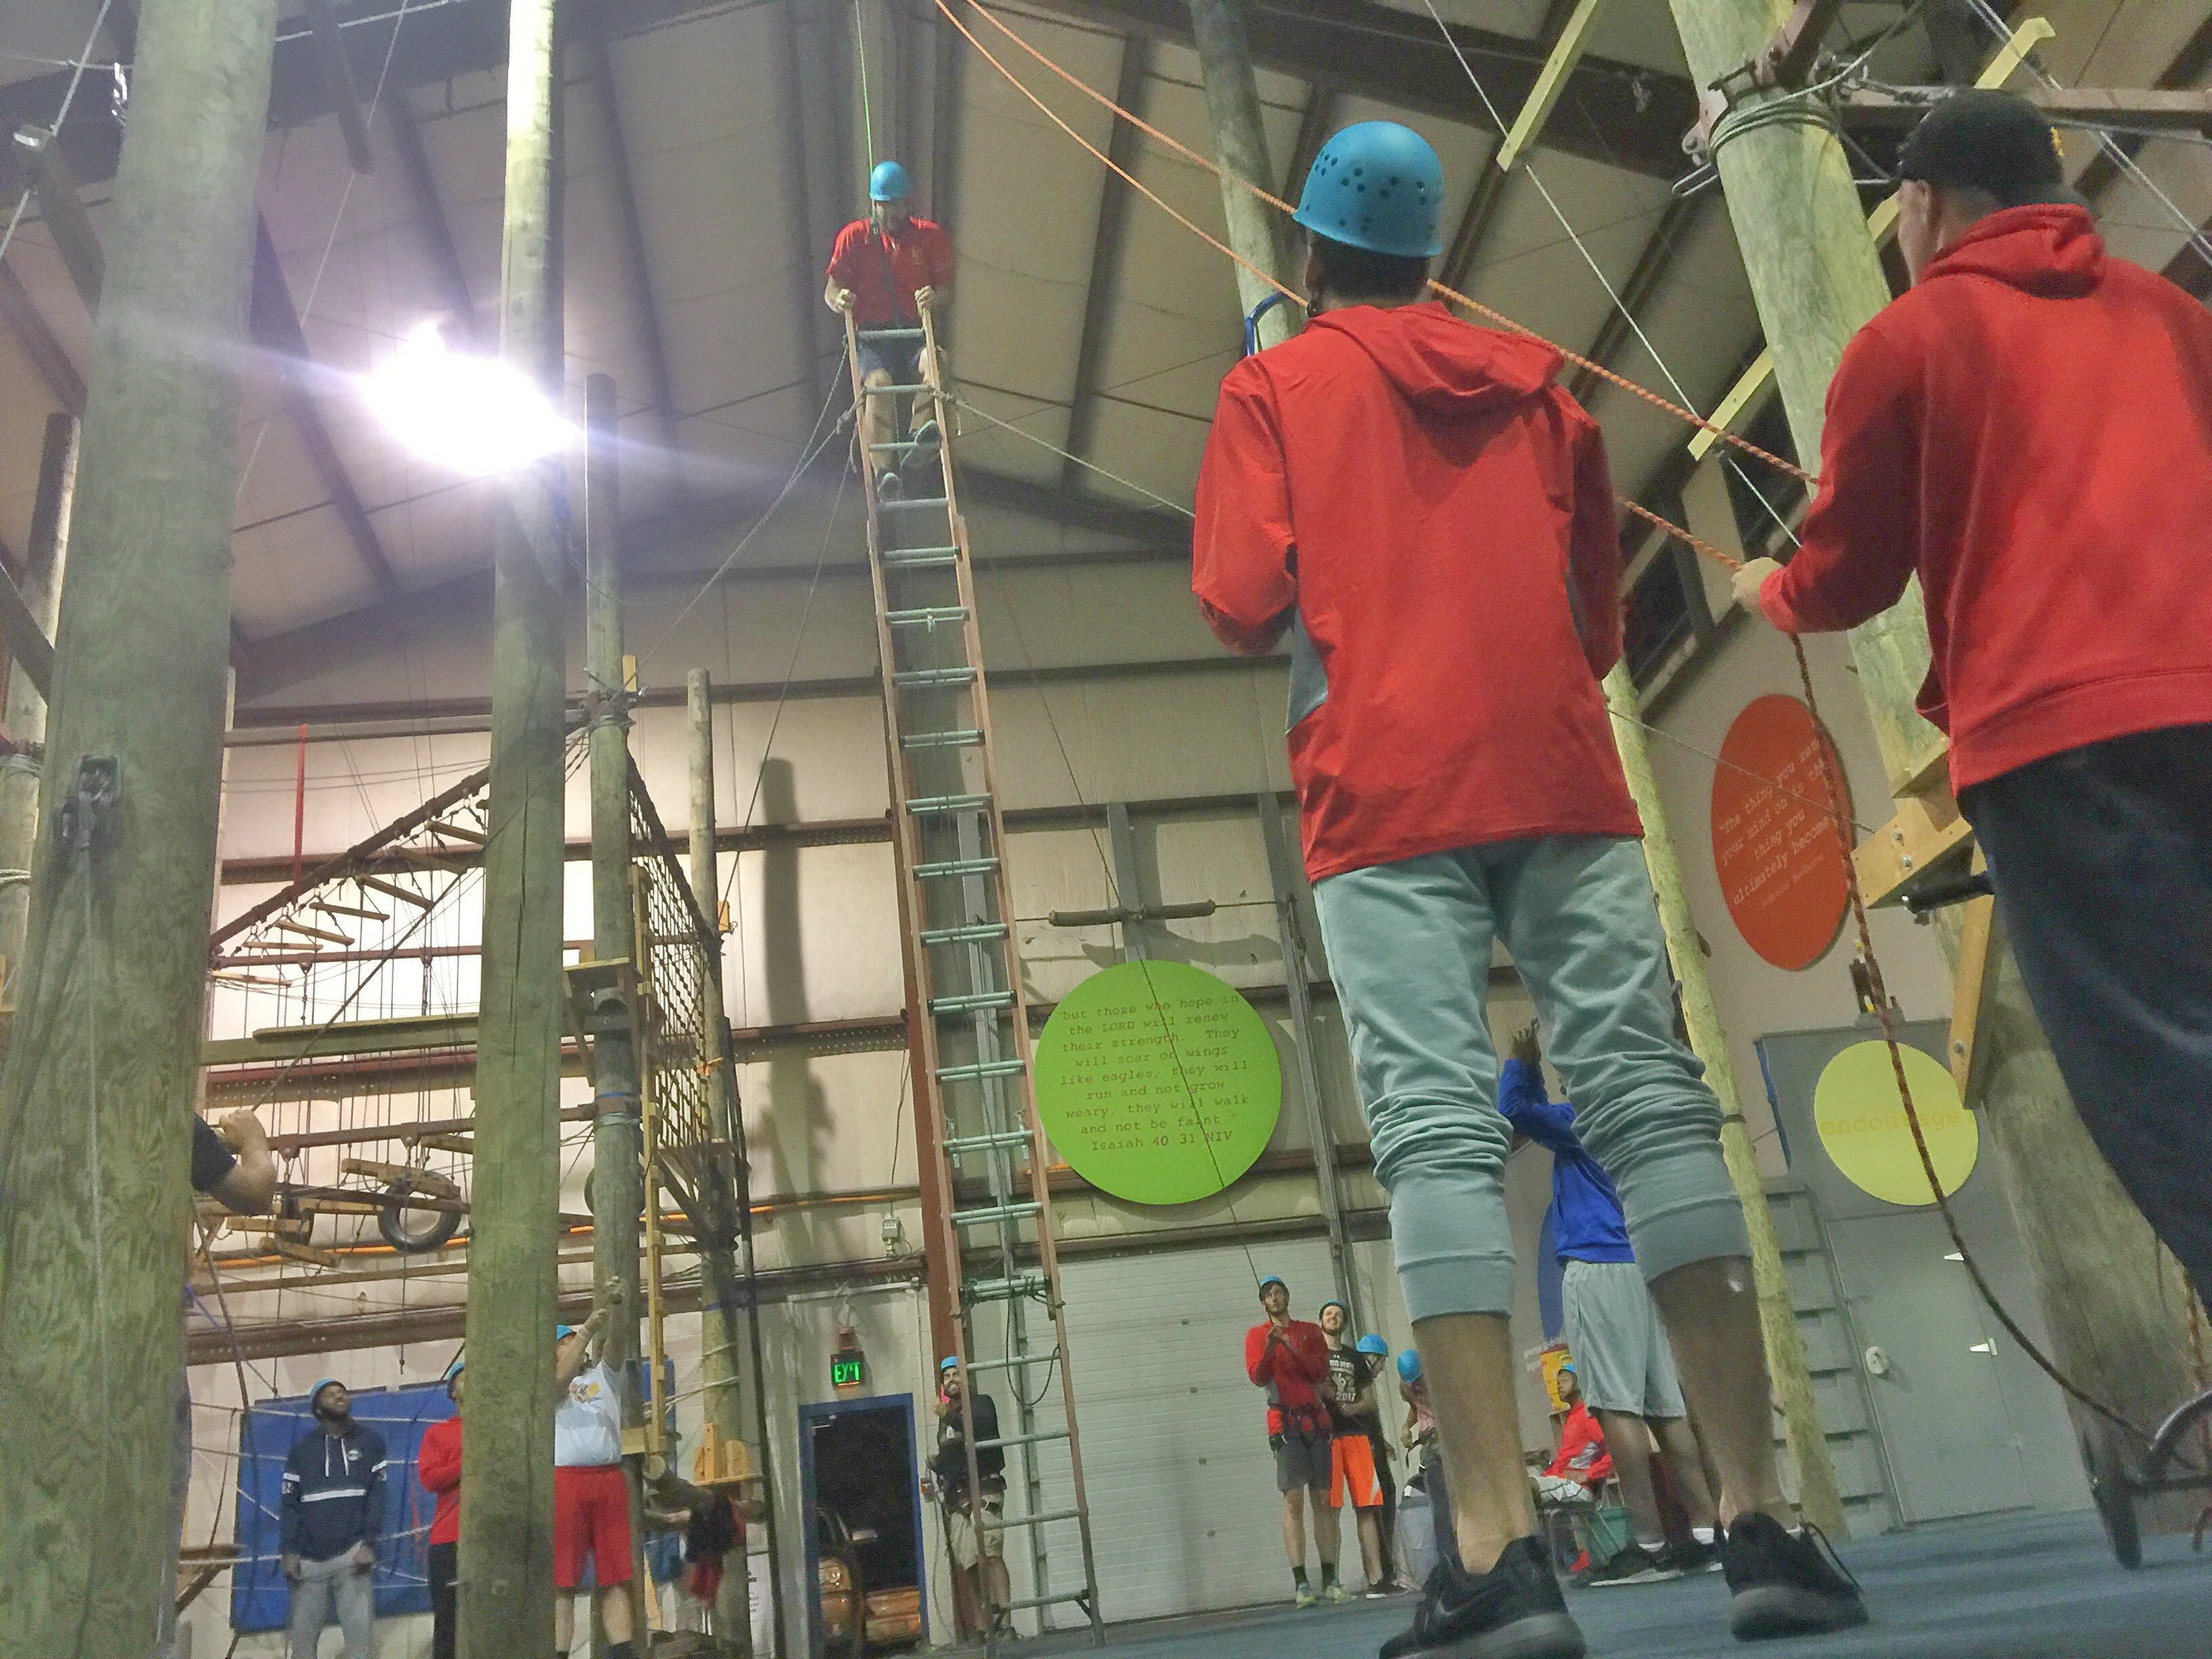 A college team uses tension ropes to hold a ladder in place while a teammate climbs to the top.